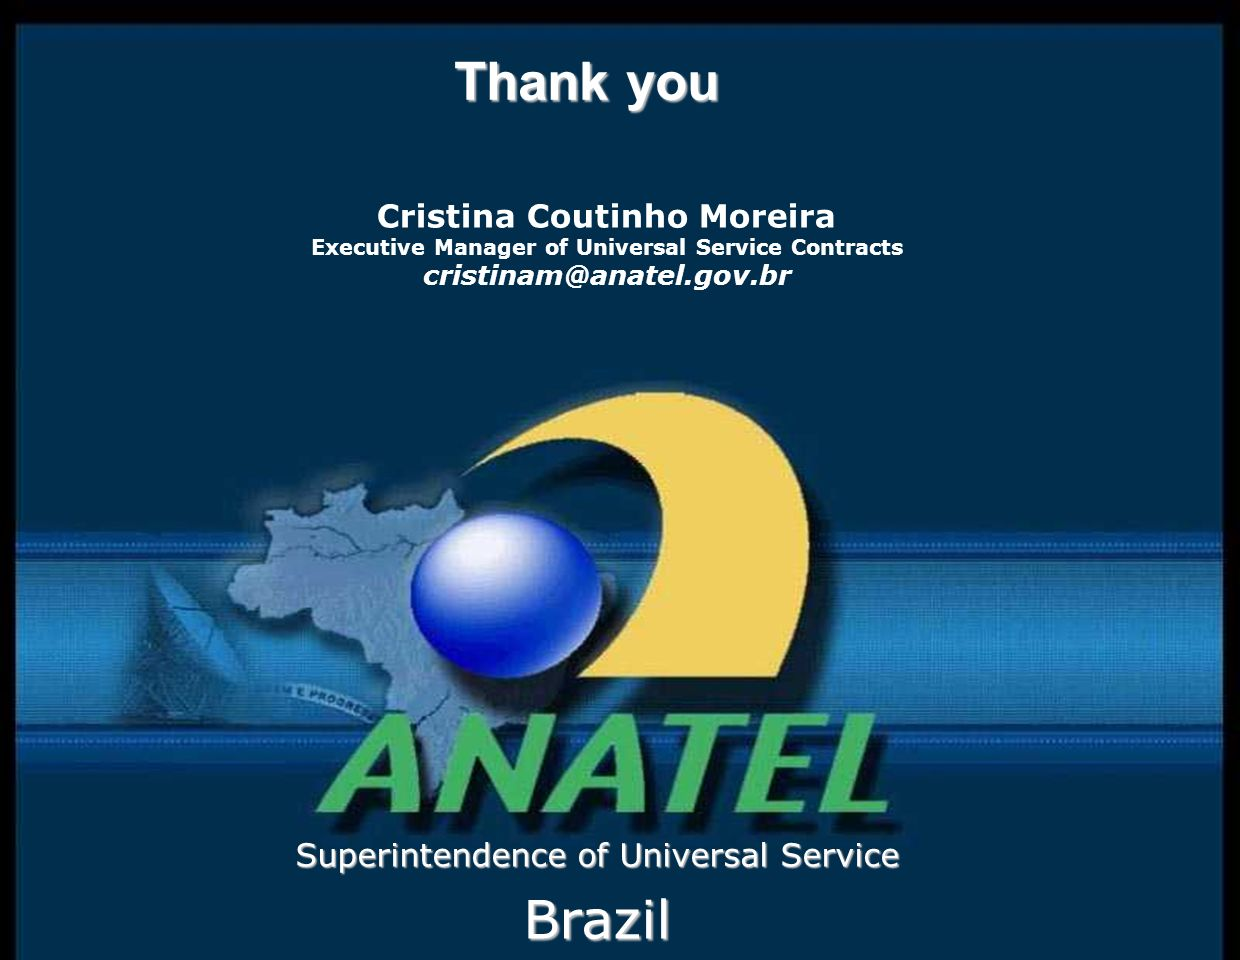 23 Thank you Superintendence of Universal Service Brazil Cristina Coutinho Moreira Executive Manager of Universal Service Contracts